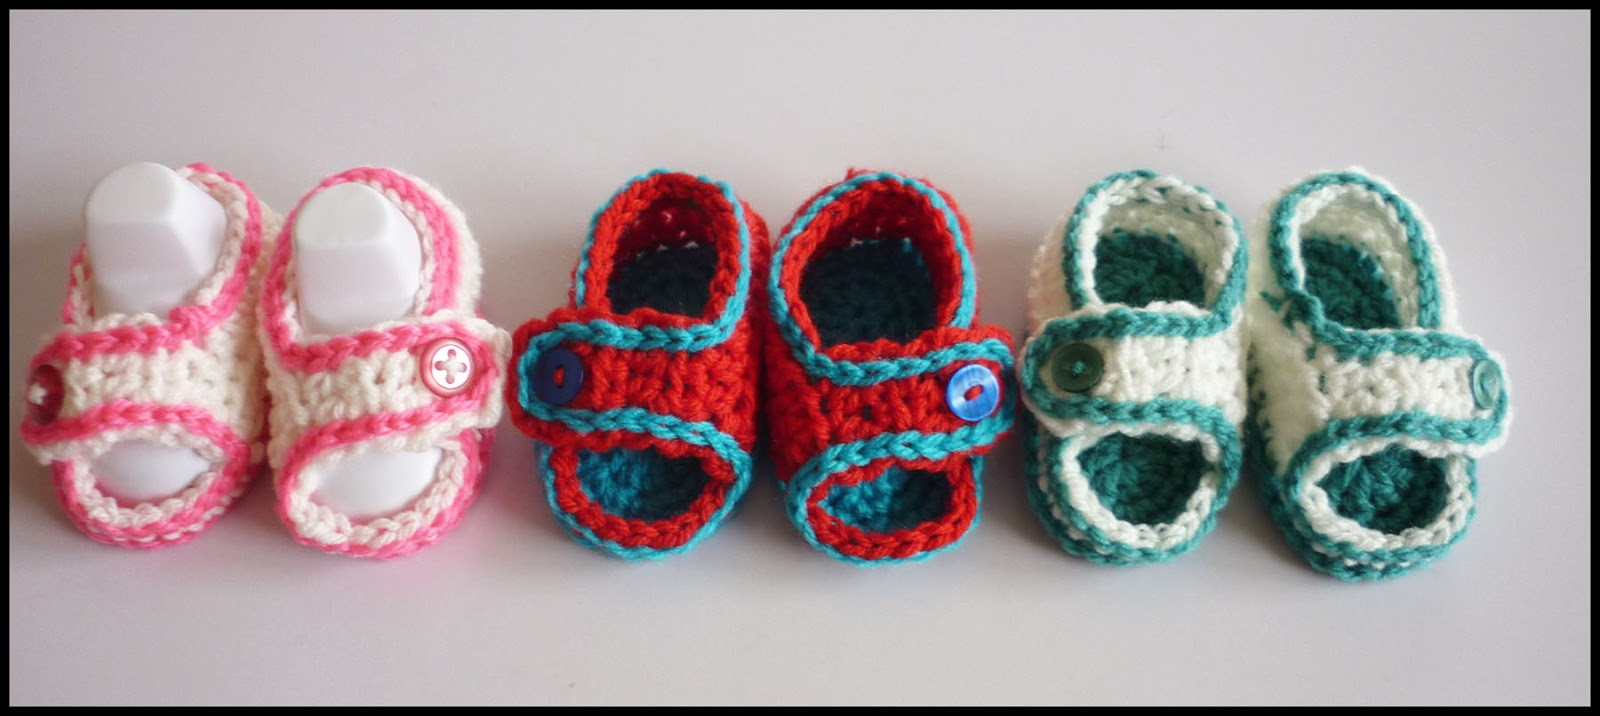 Mamma that makes simple sandals free crochet pattern simple sandals free crochet pattern bankloansurffo Gallery